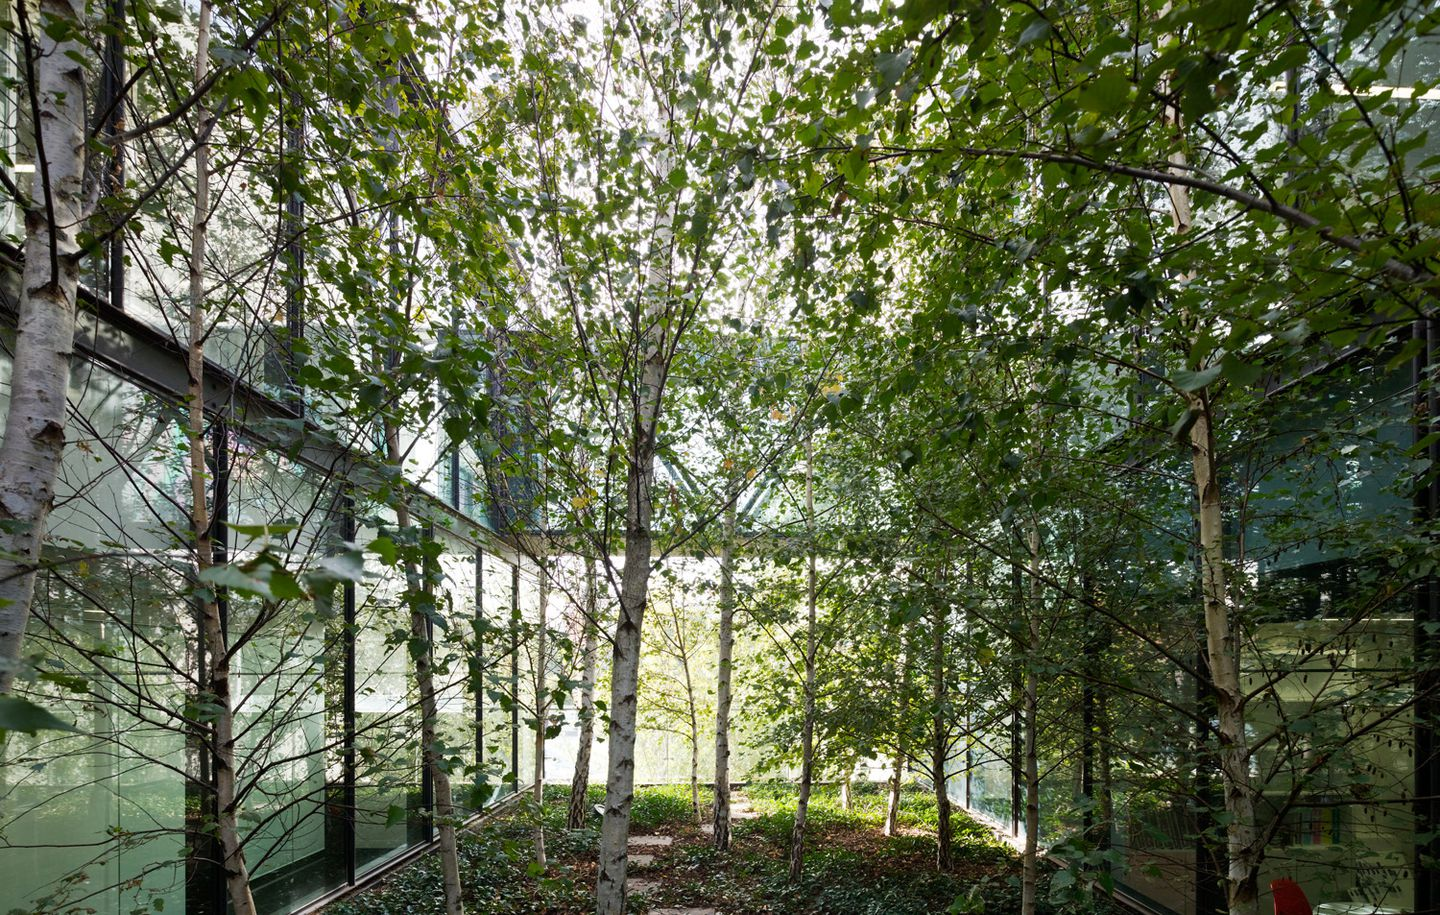 Central courtyard garden with Birch trees in an office building in Melbourne Victoria designed by Durbach Block Jaggers Architects